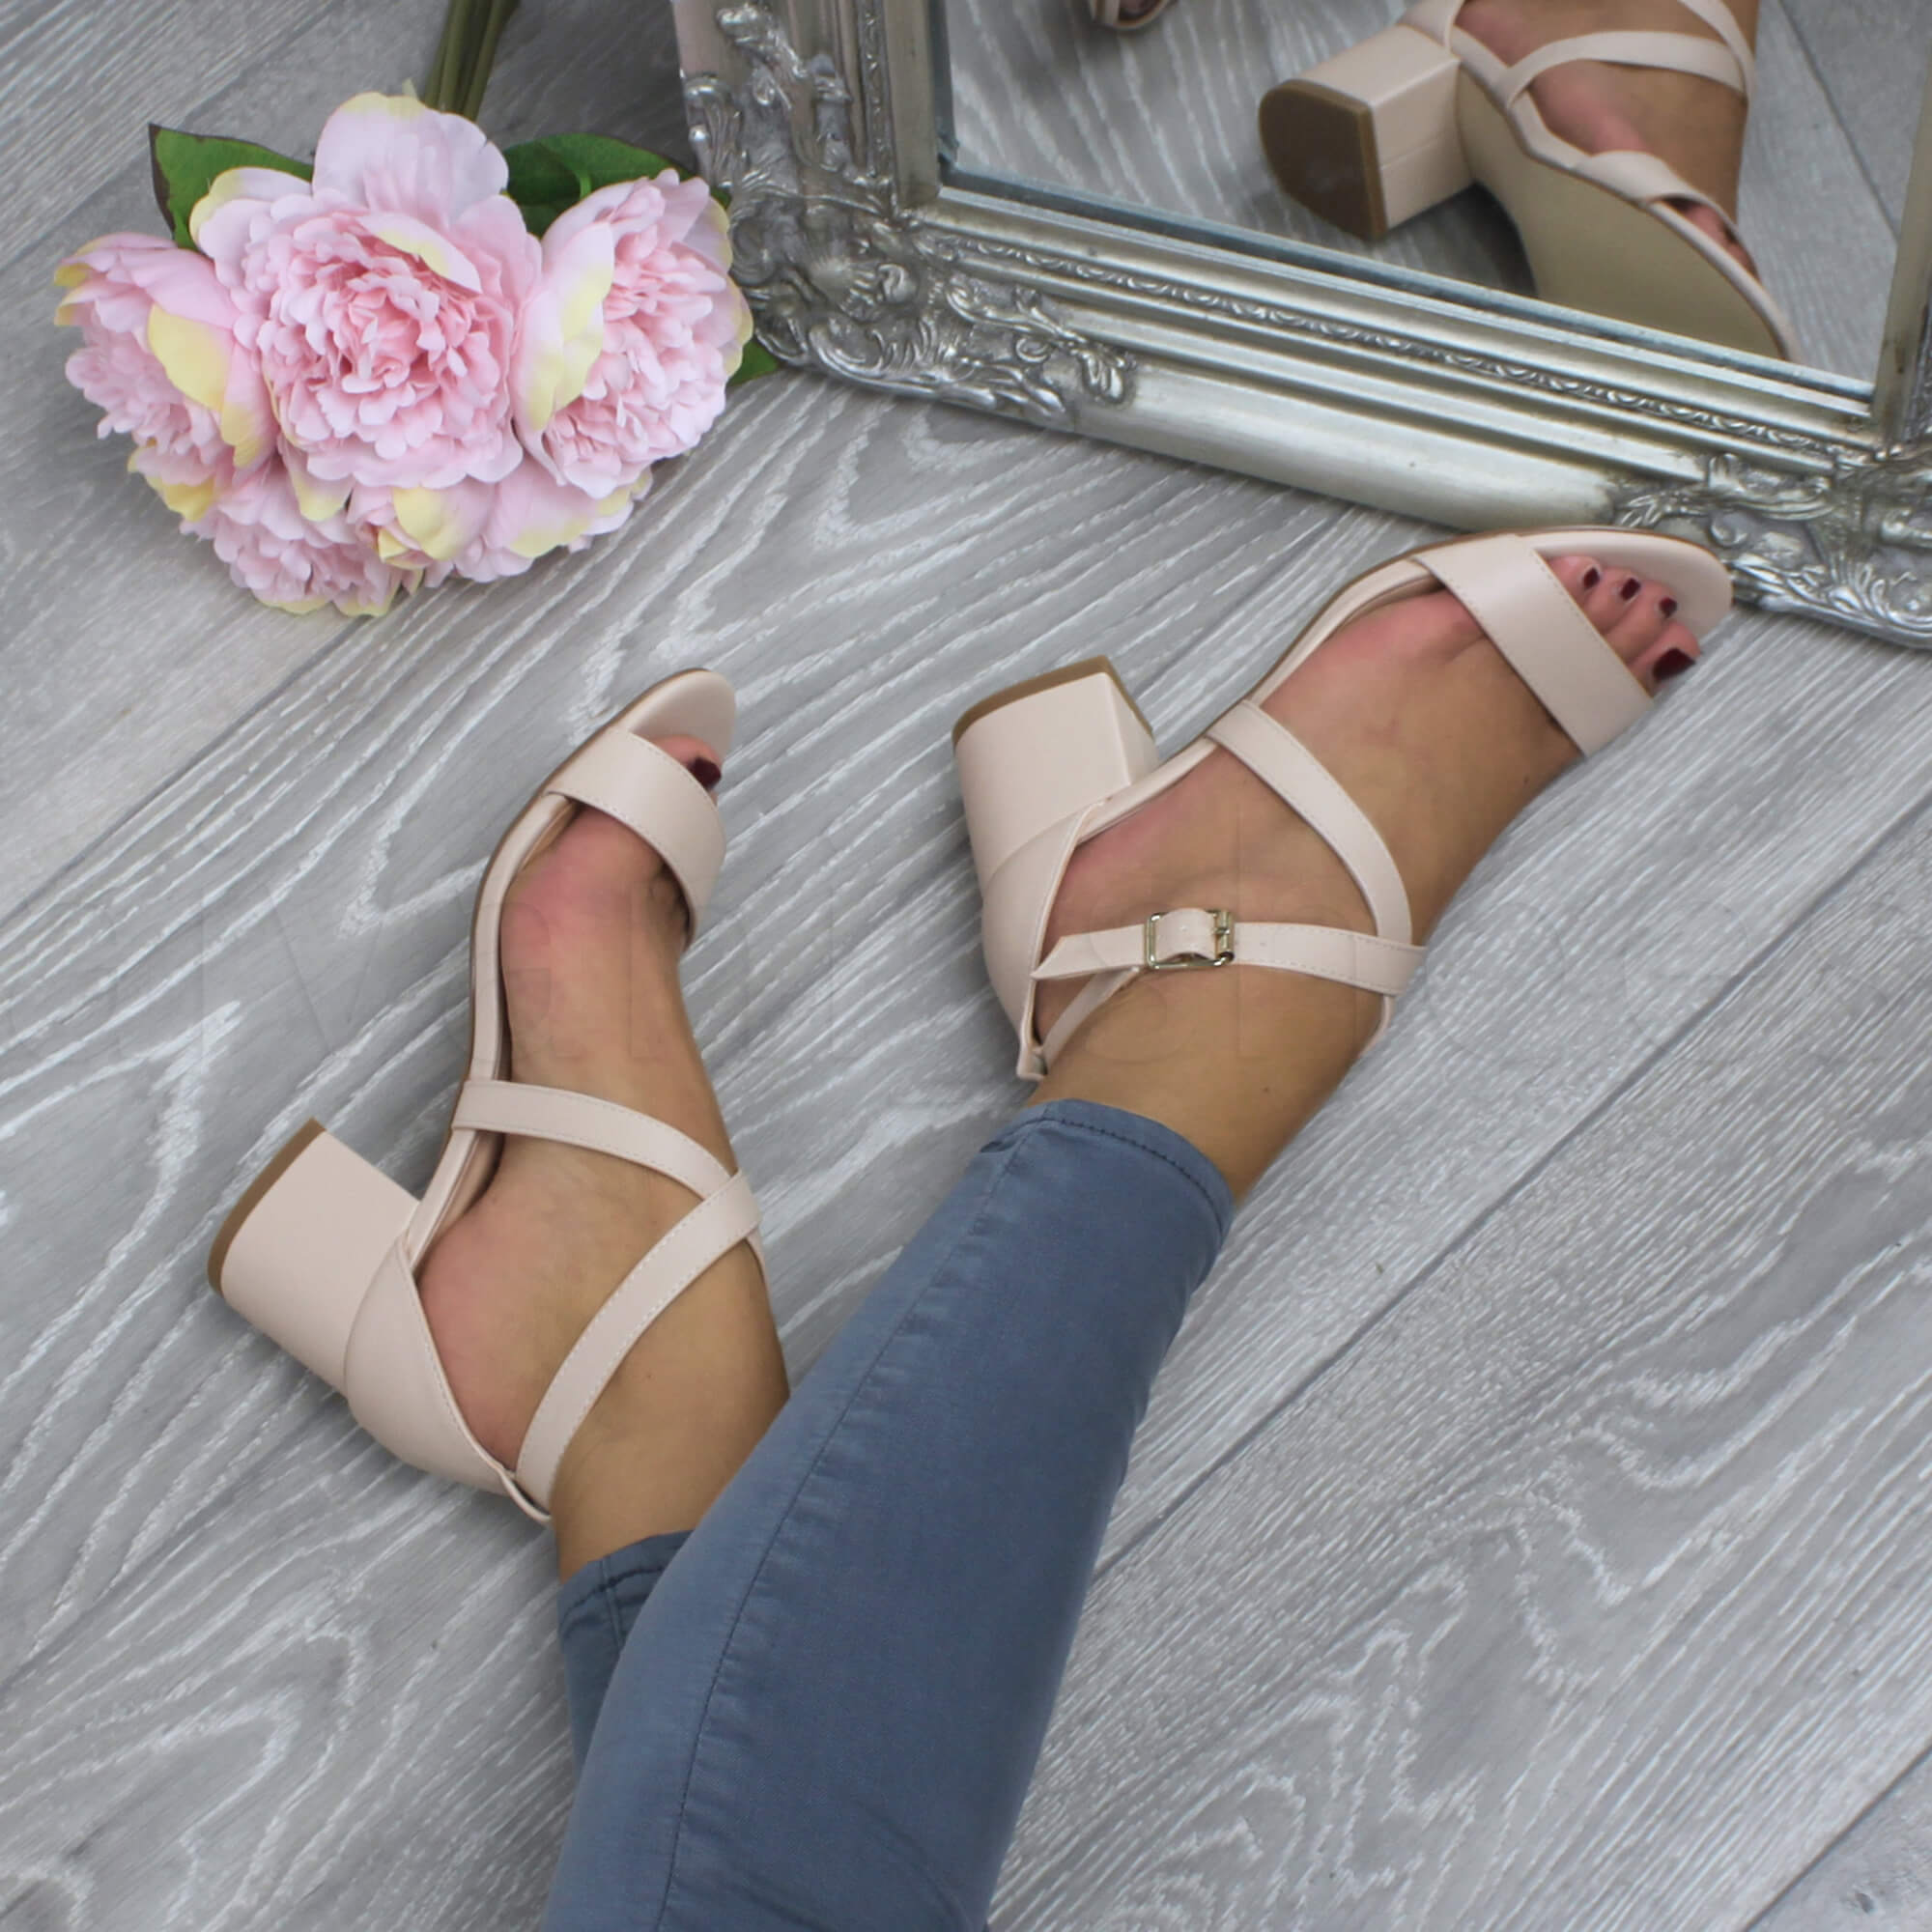 WOMENS-LADIES-MID-LOW-BLOCK-HEEL-CROSS-STRAPS-PARTY-STRAPPY-SANDALS-SHOES-SIZE thumbnail 55